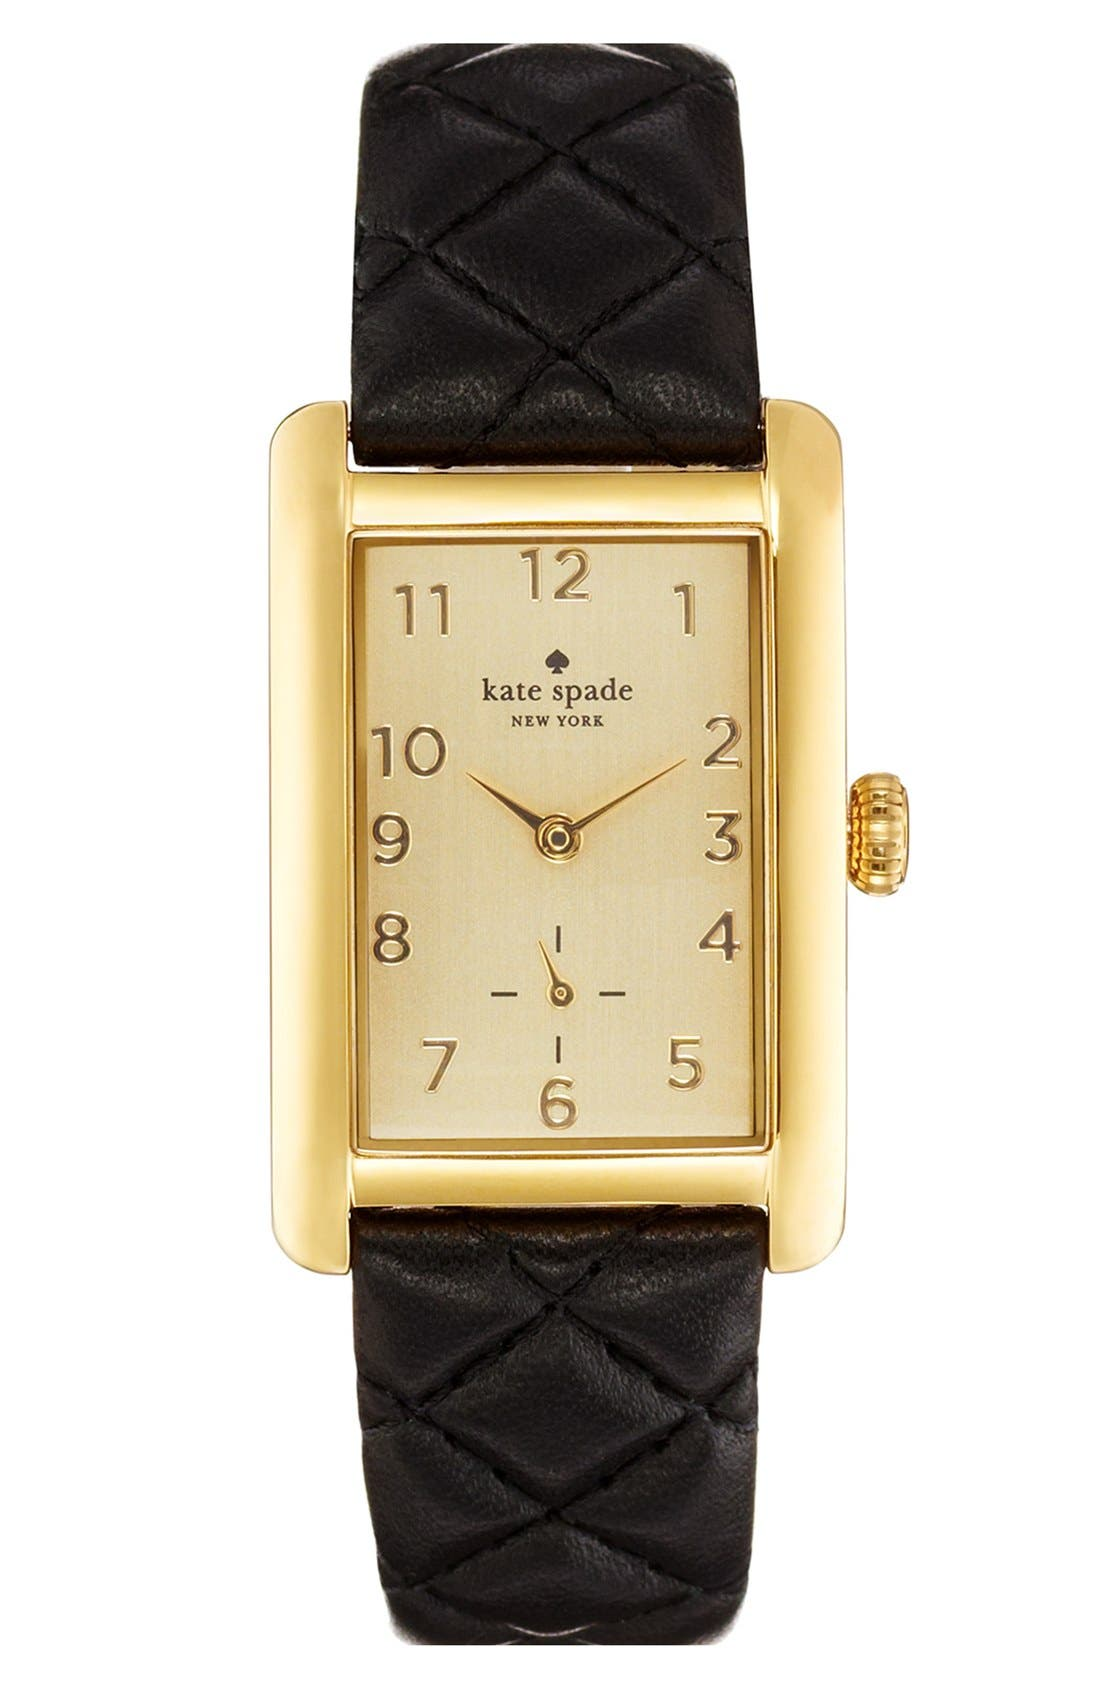 Main Image - kate spade new york 'cooper grand' leather strap watch, 25mm x 38mm